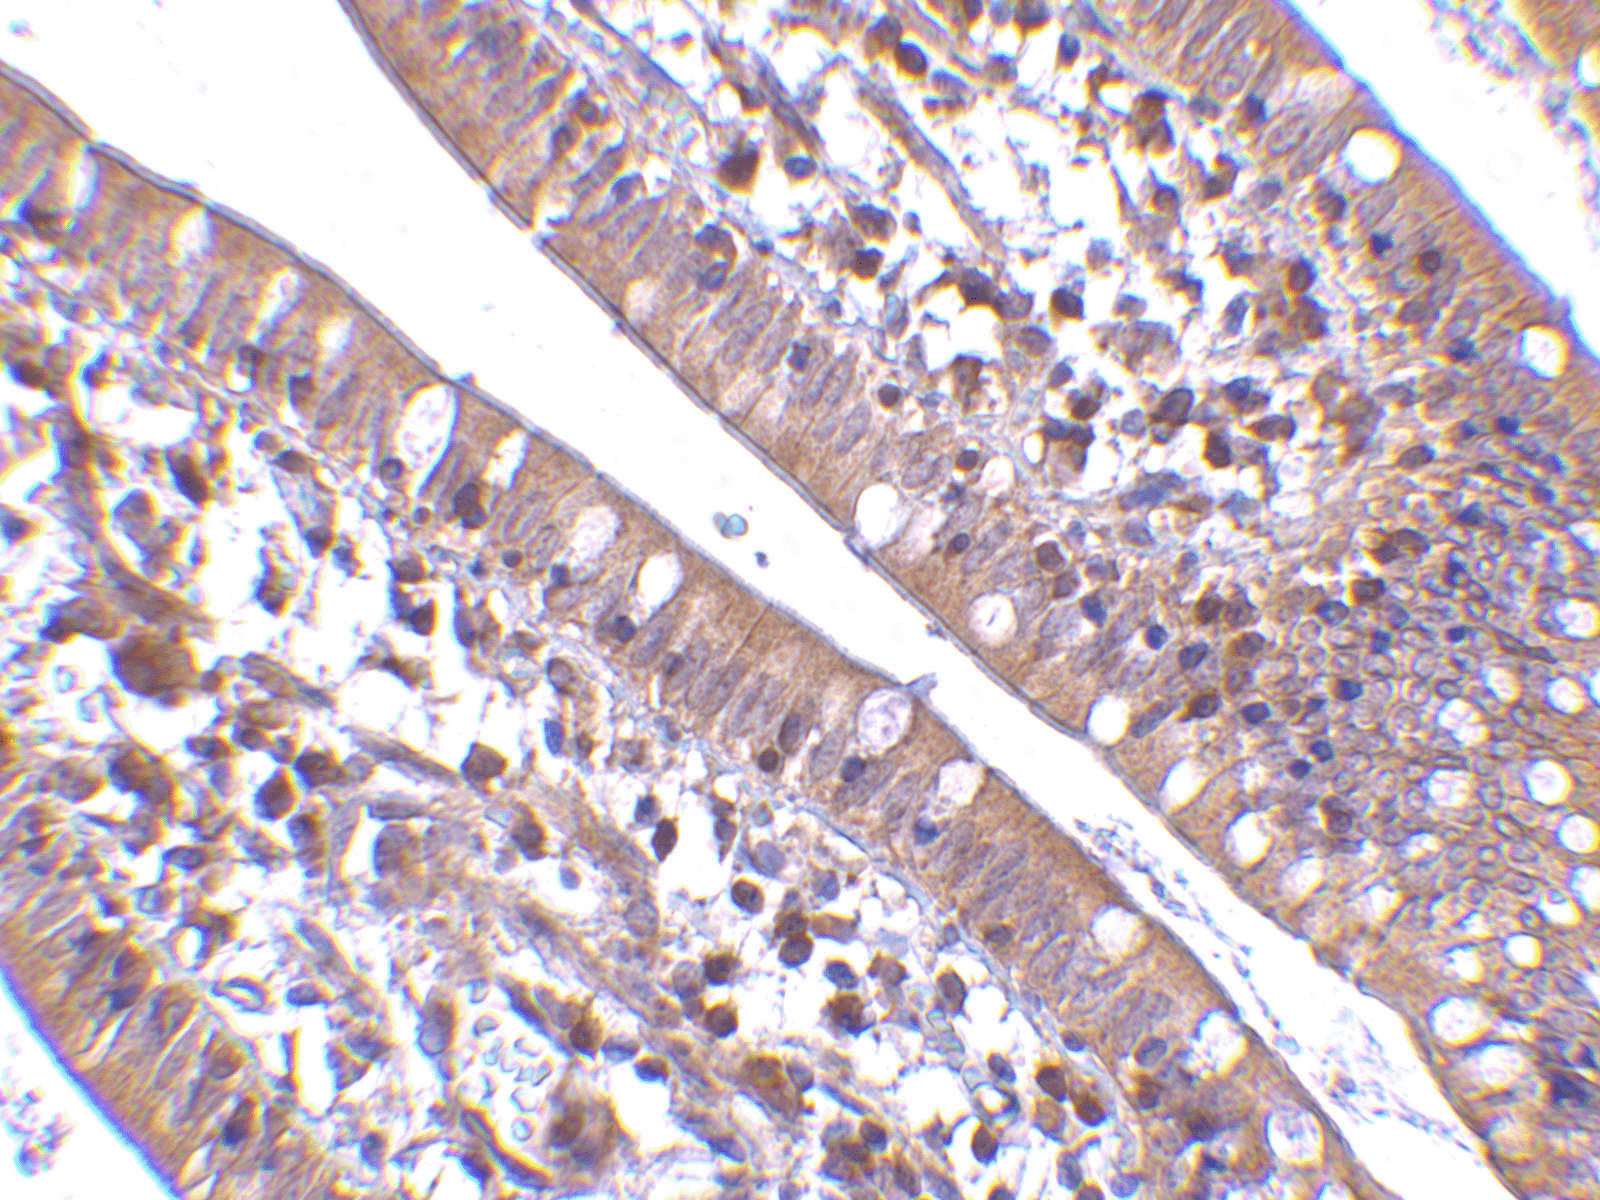 CIDE-B Antibody (OAPB00117) in humanmall intestine cells using Immunohistochemistry